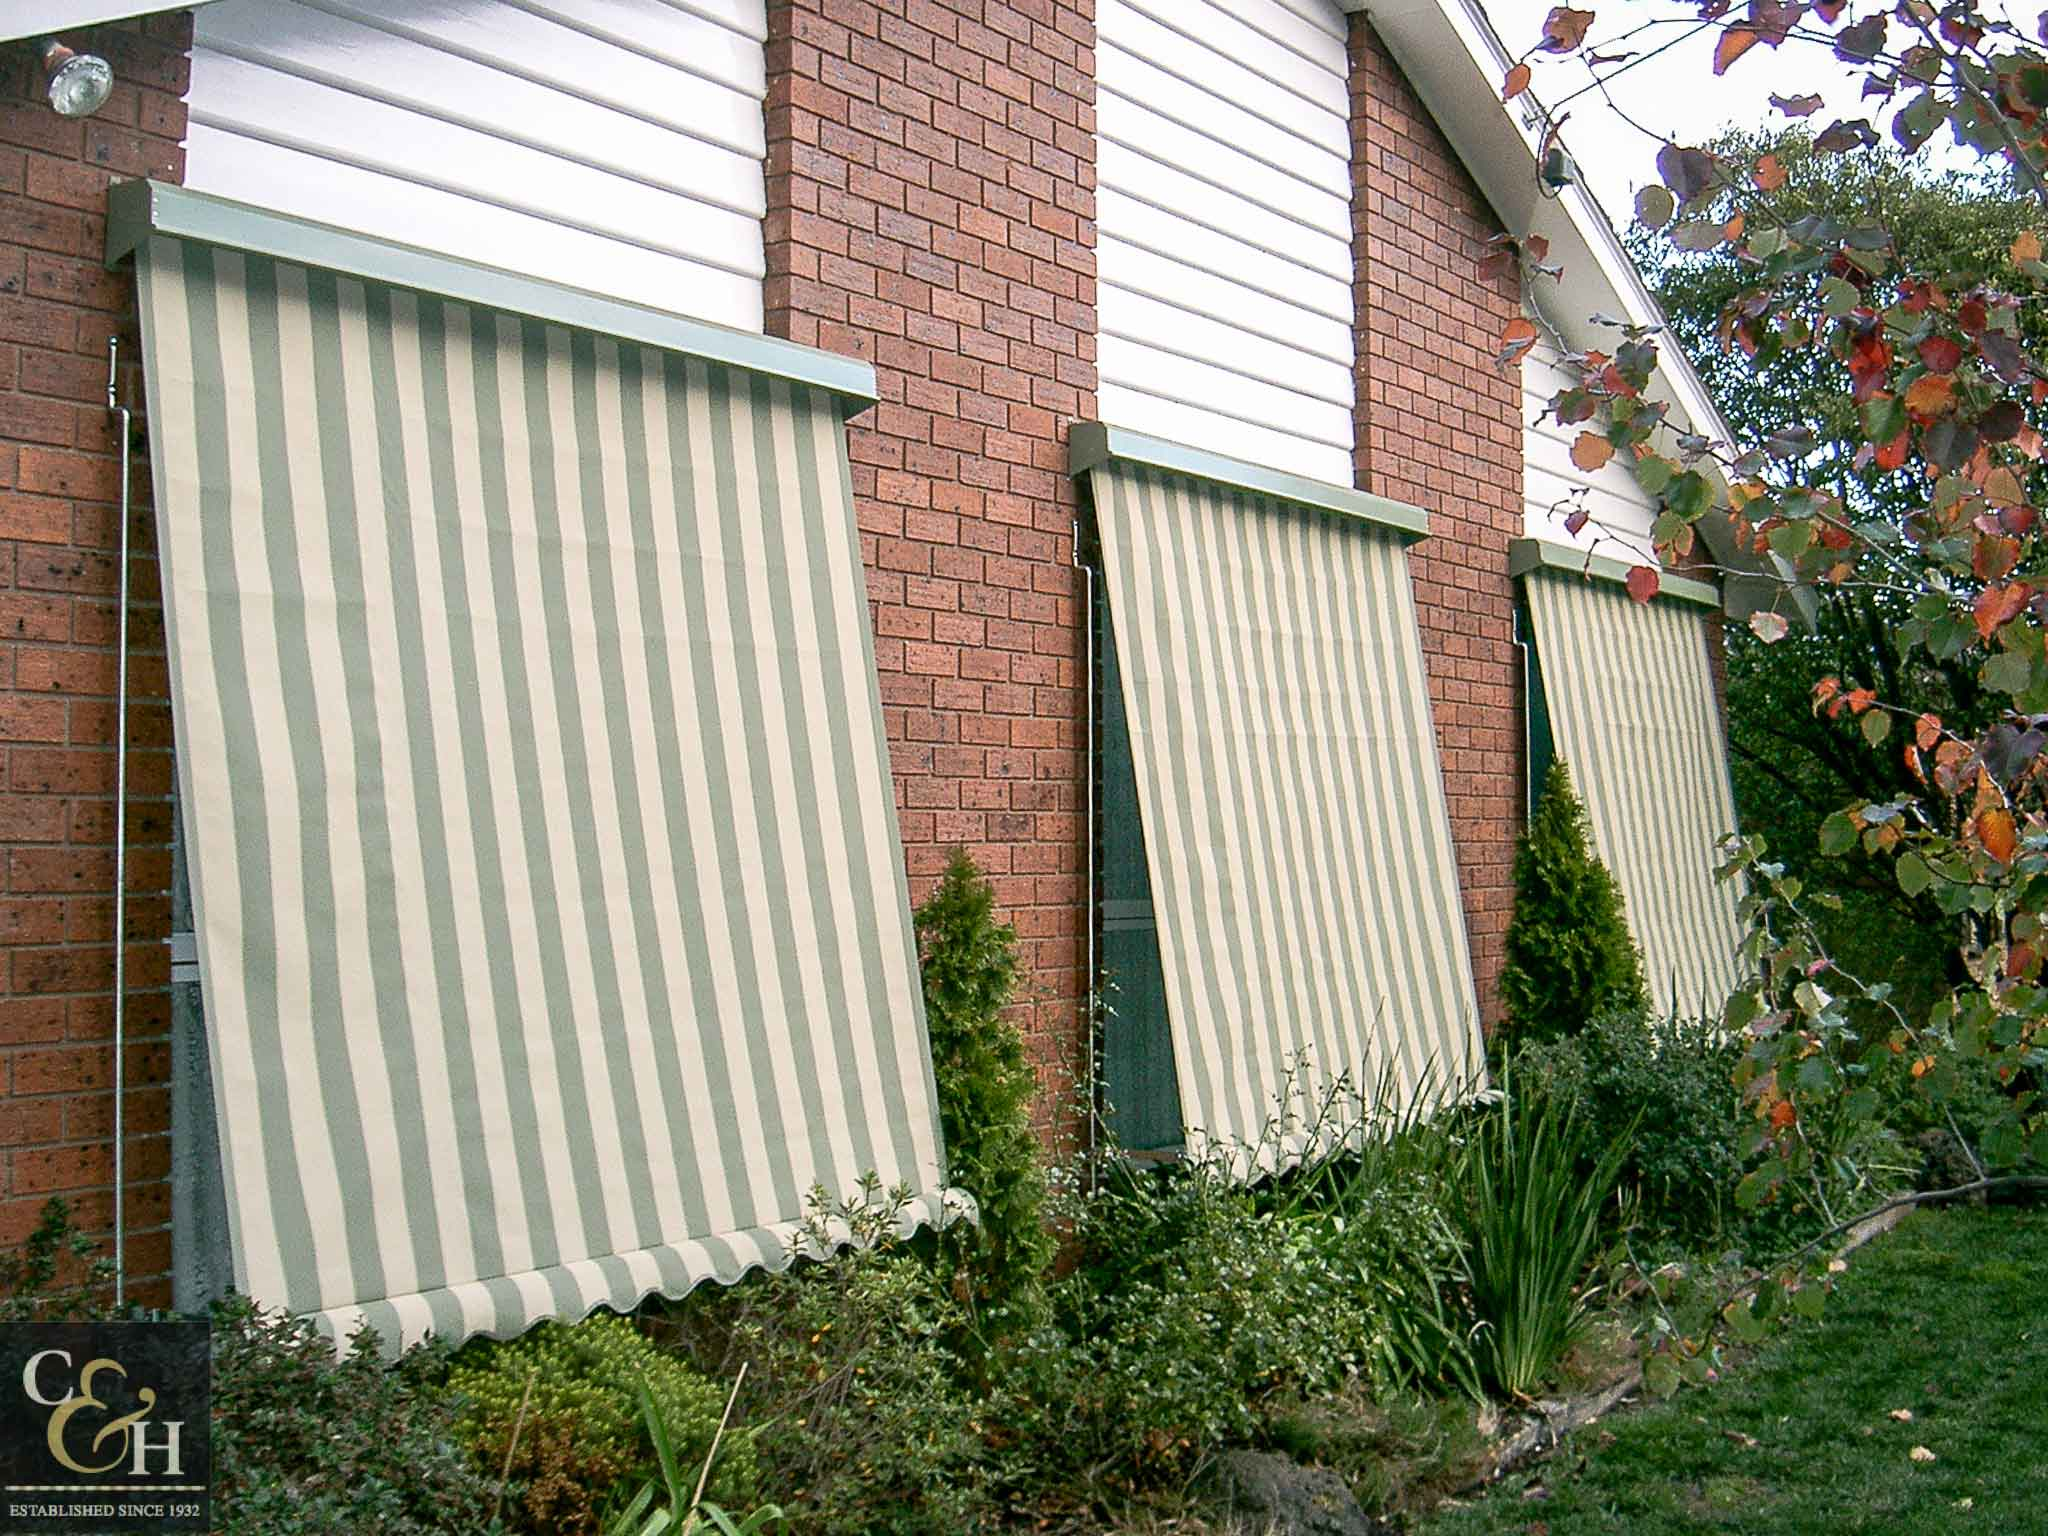 Sunblinds Outdoor Blinds 9 Campbell amp Heeps